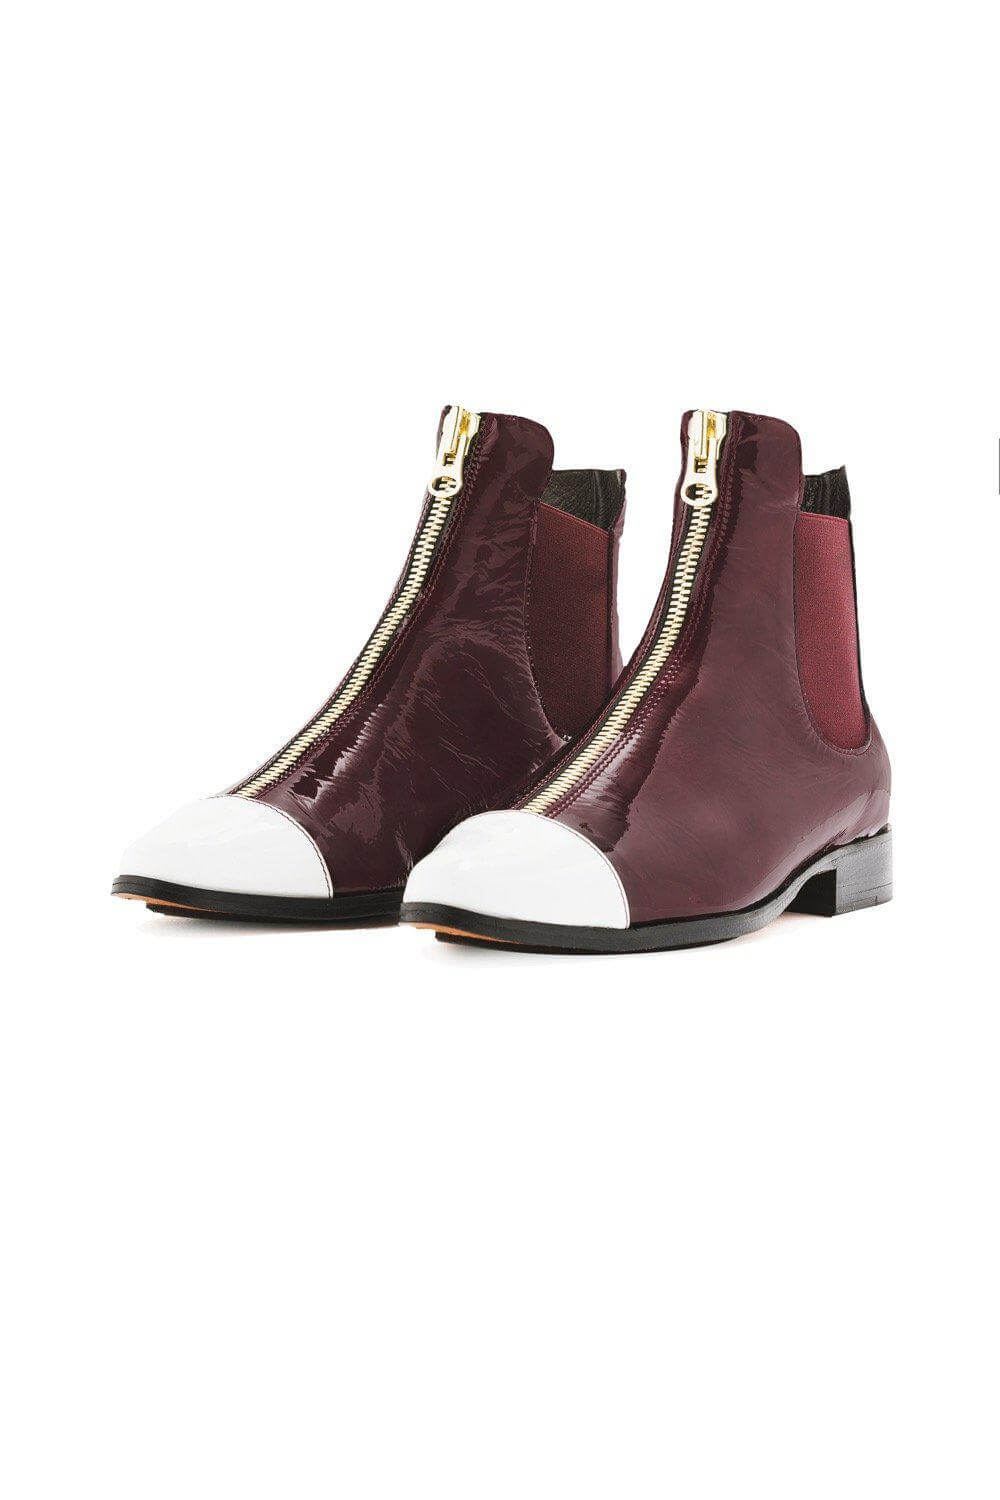 Duchesse boots in burgundy leather